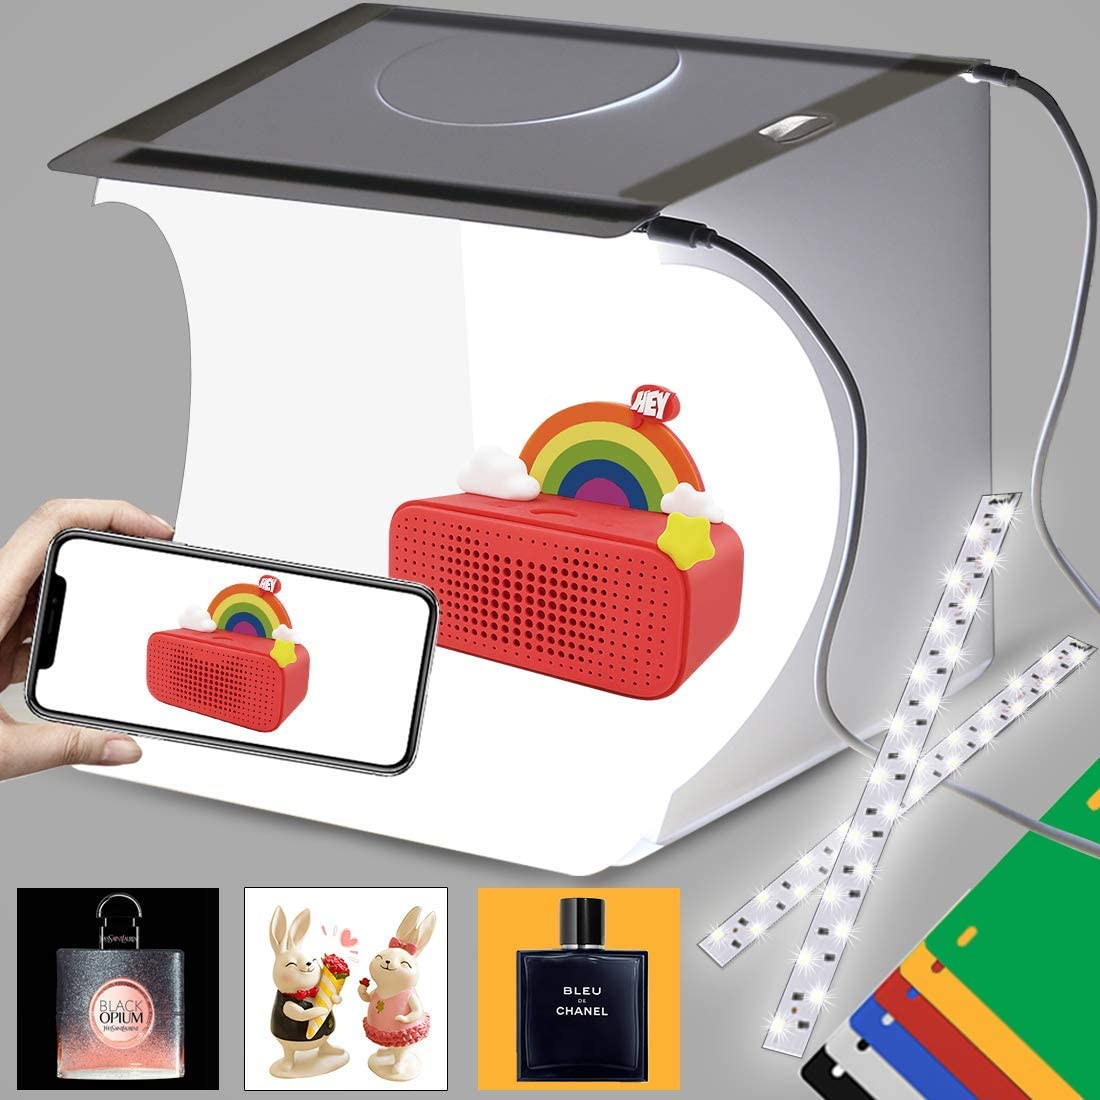 VicJoye Tabletop Photography Lightbox Light Tent Mini Photo Studio Box Tent with 2 LED Light and 6 Color Background for Small Size Products